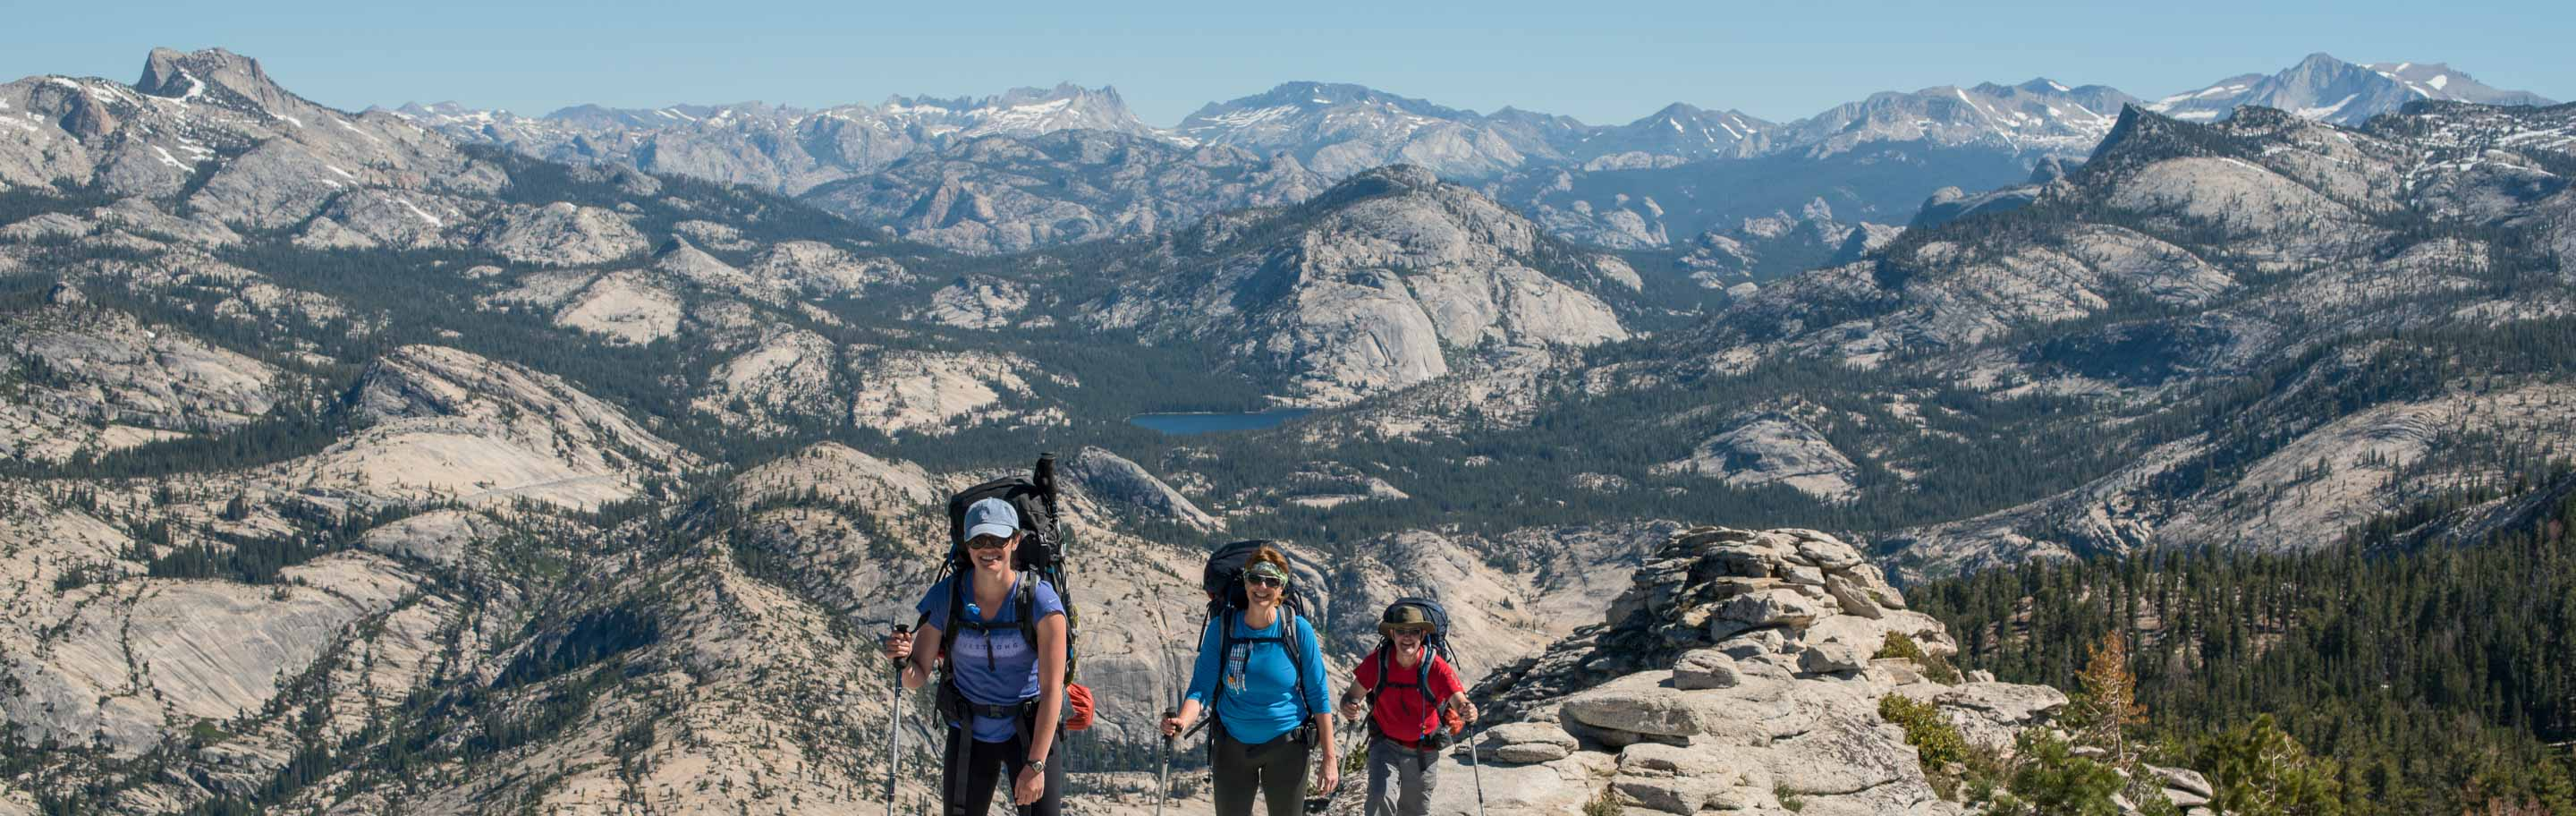 Backpacking through the Yosemite high country, photo by Tyler Gates